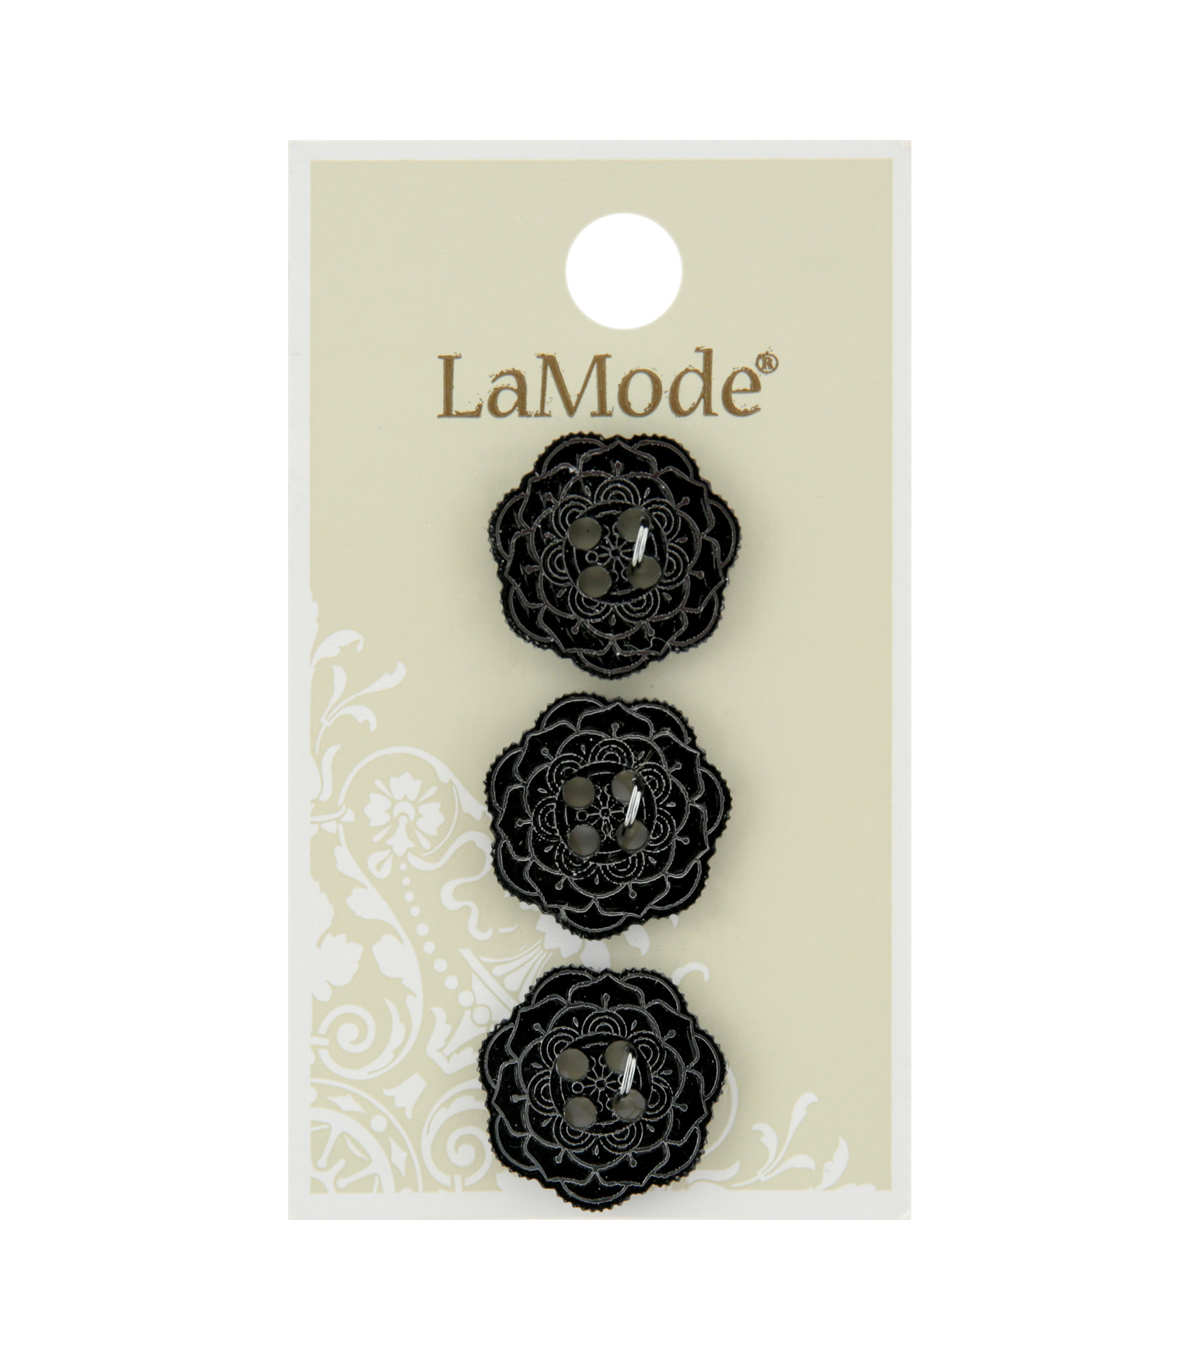 La Mode 3 pk 18 mm Mirrored Flower 4 Hole Buttons-Black